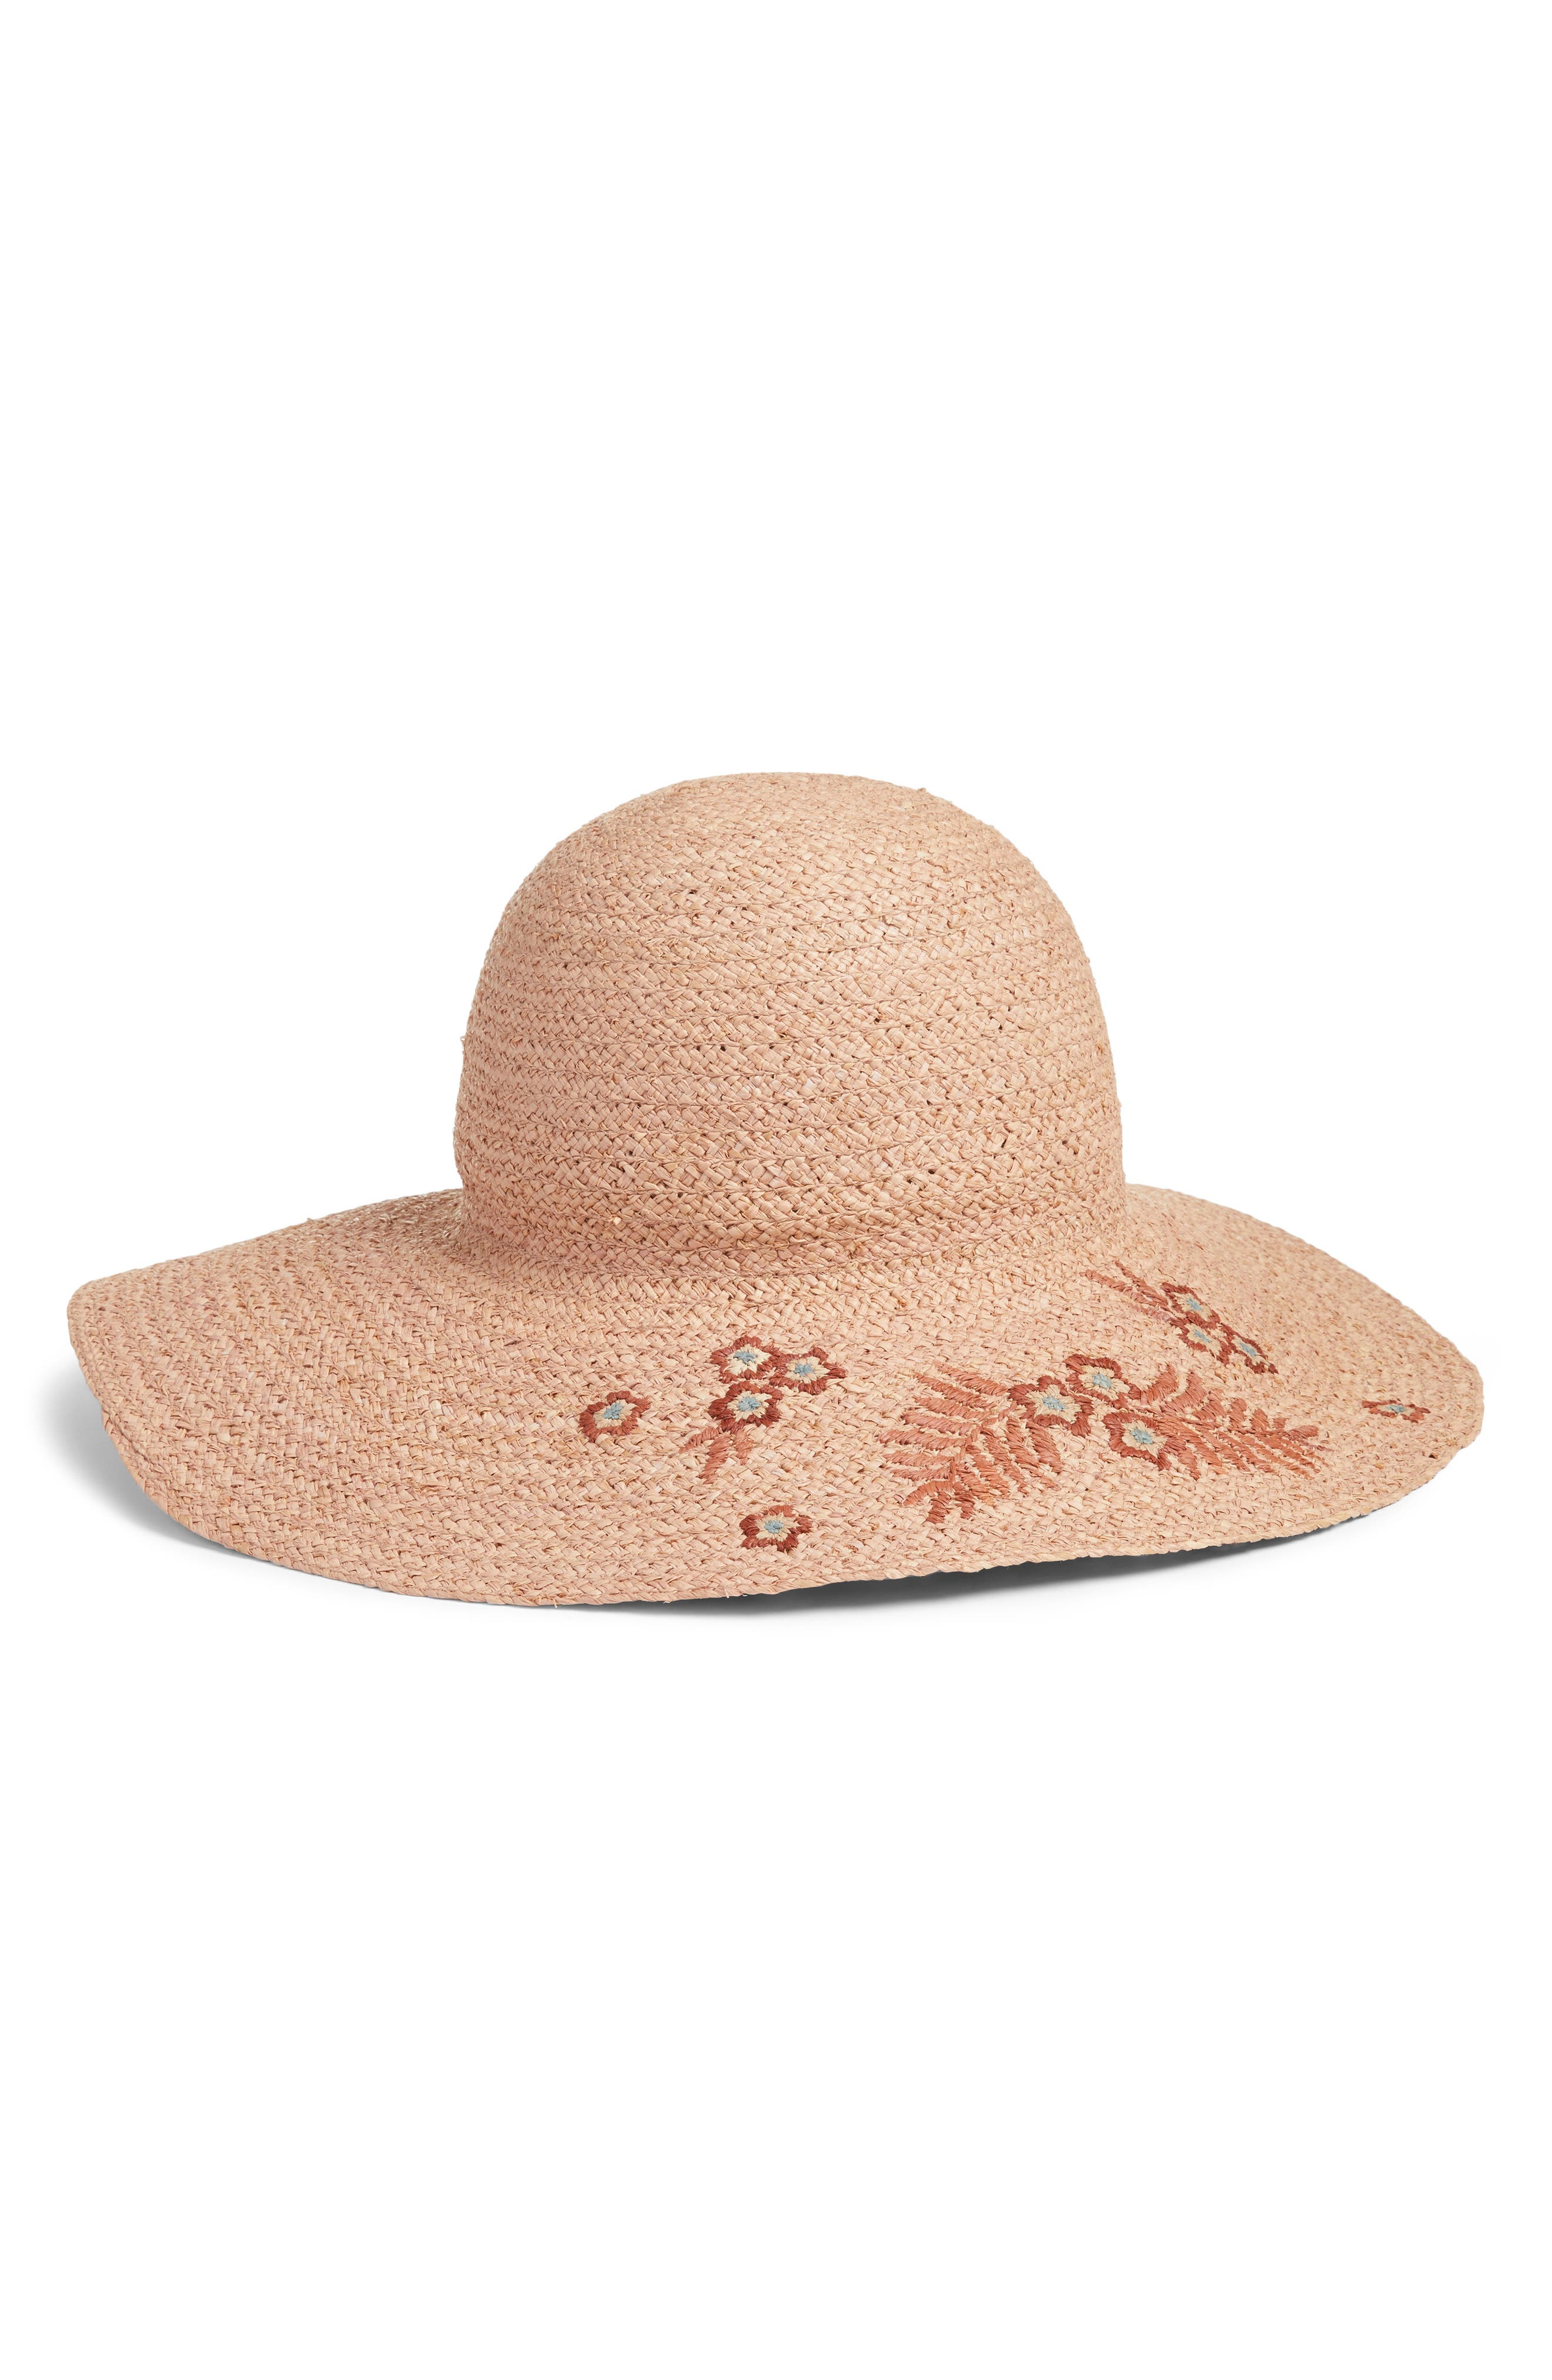 Flower Embroidered Raffia Hat,                             Main thumbnail 1, color,                             Coral Sand